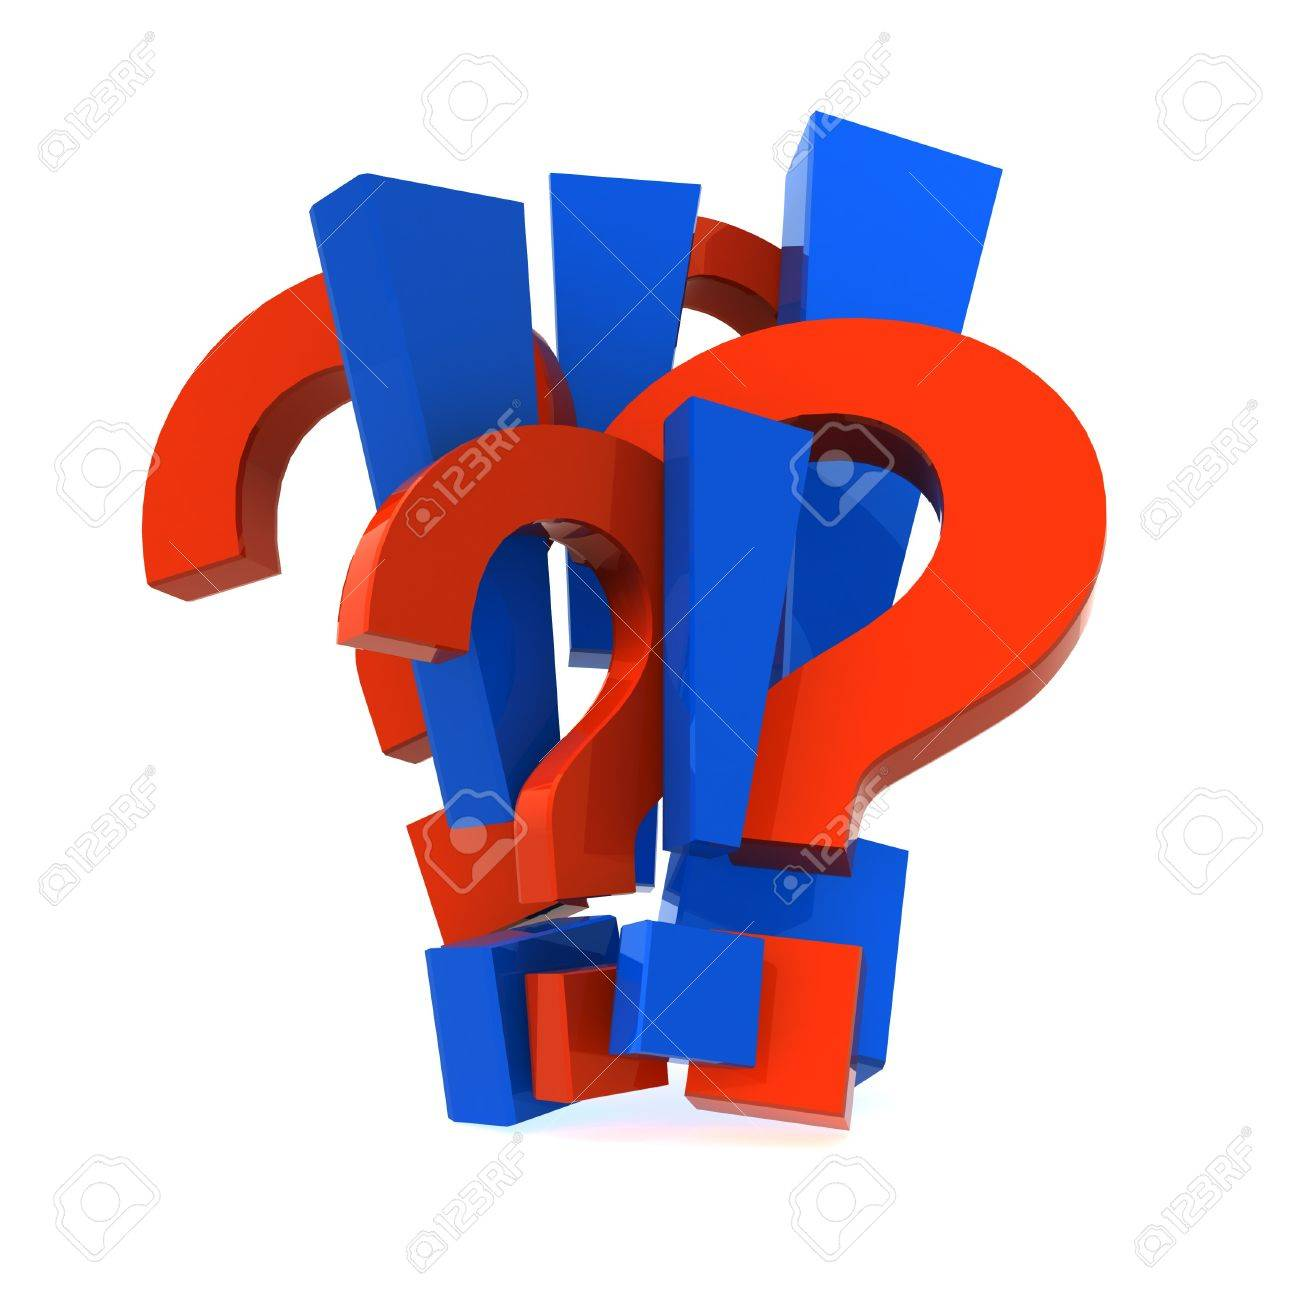 Three-dimensional model of symbols - a mark of a question and an exclamation mark. Stock Photo - 7744333